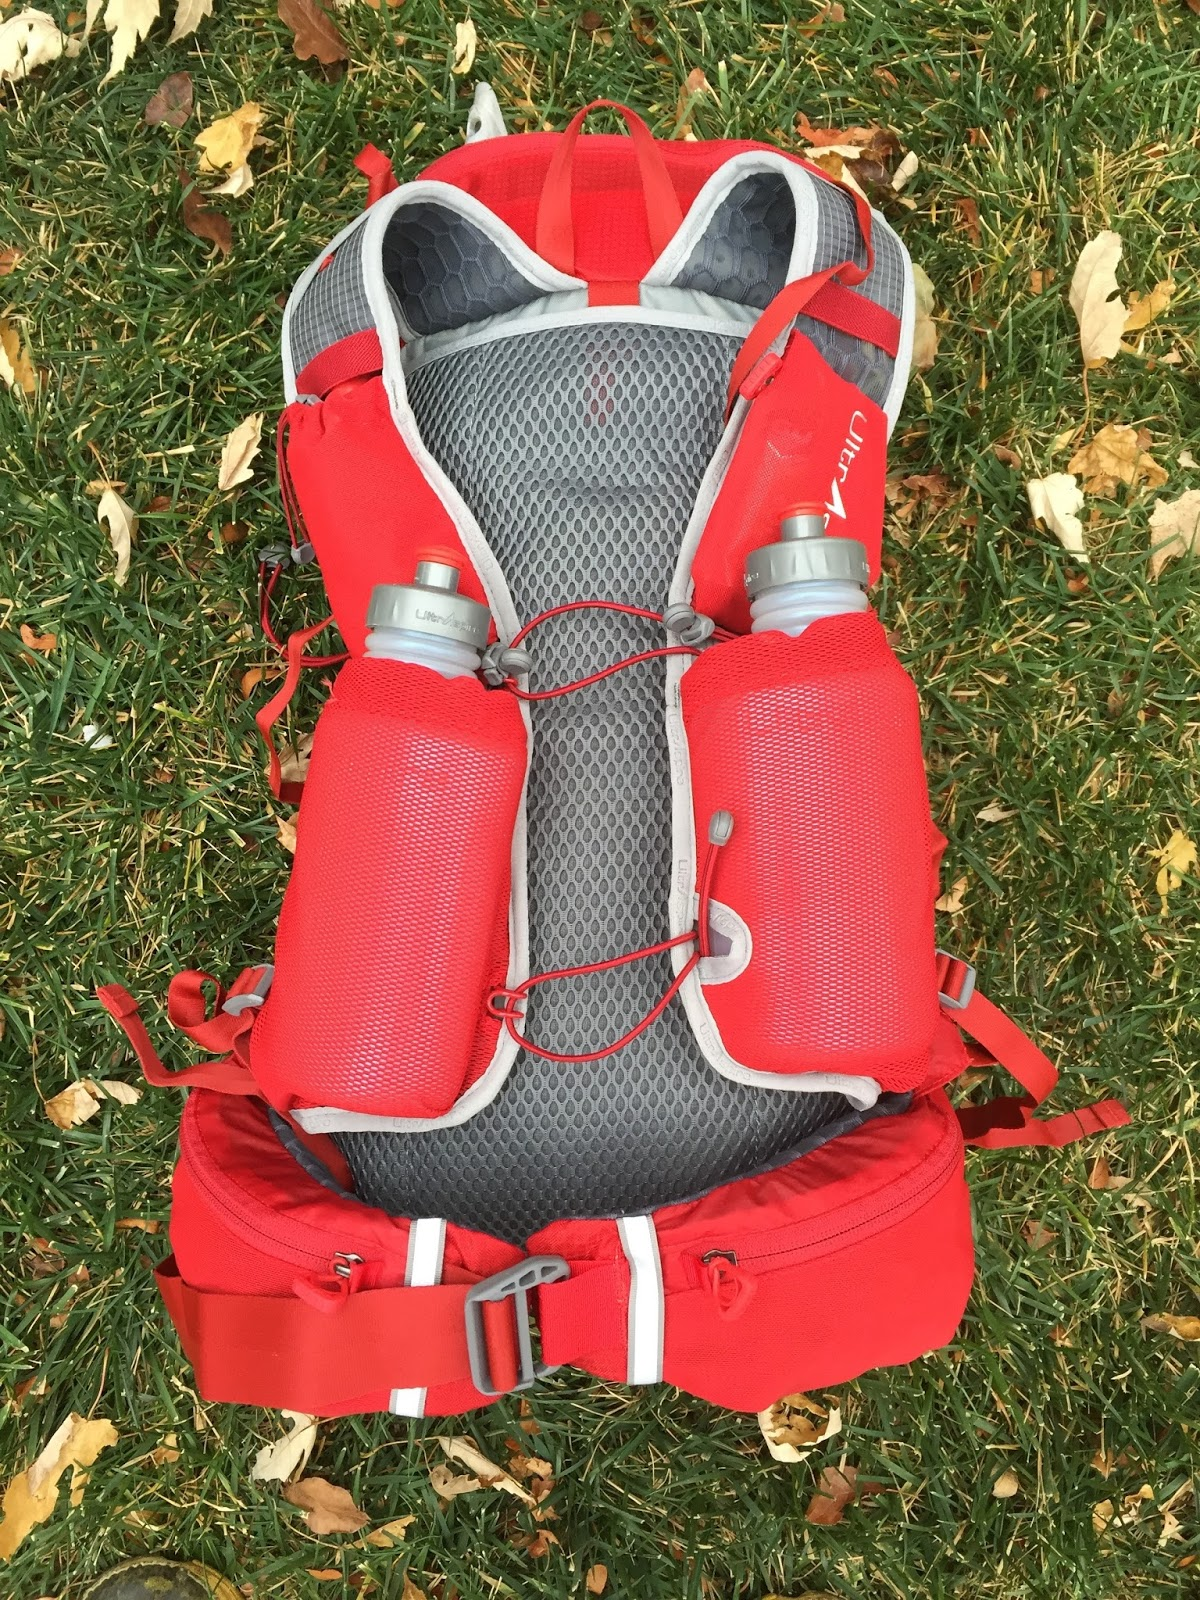 ac233d584355 The two bungee chest straps originate on the left shoulder strap and are  integrated with the left flask pocket